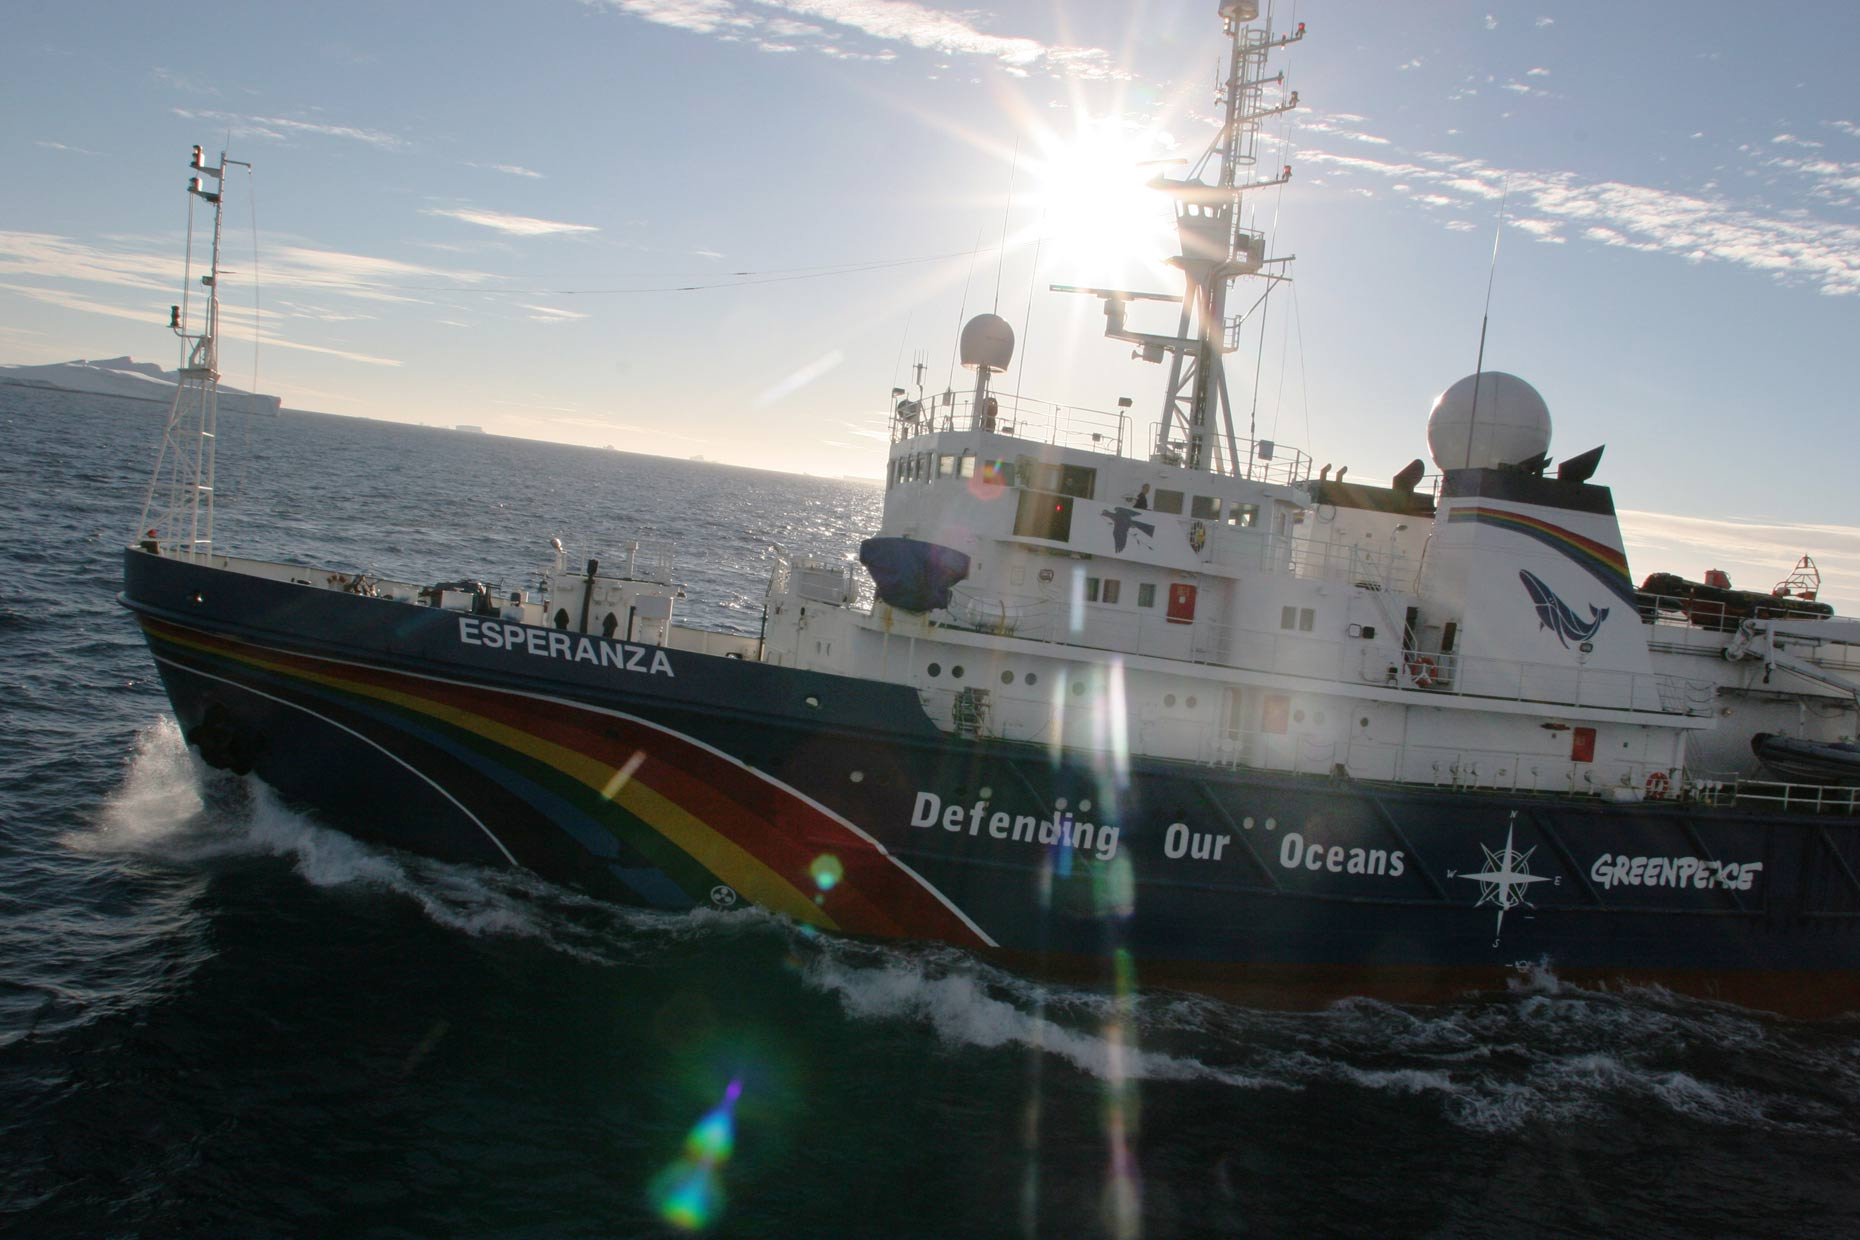 Greenpeace ship Esperanza, by Scotland photographer